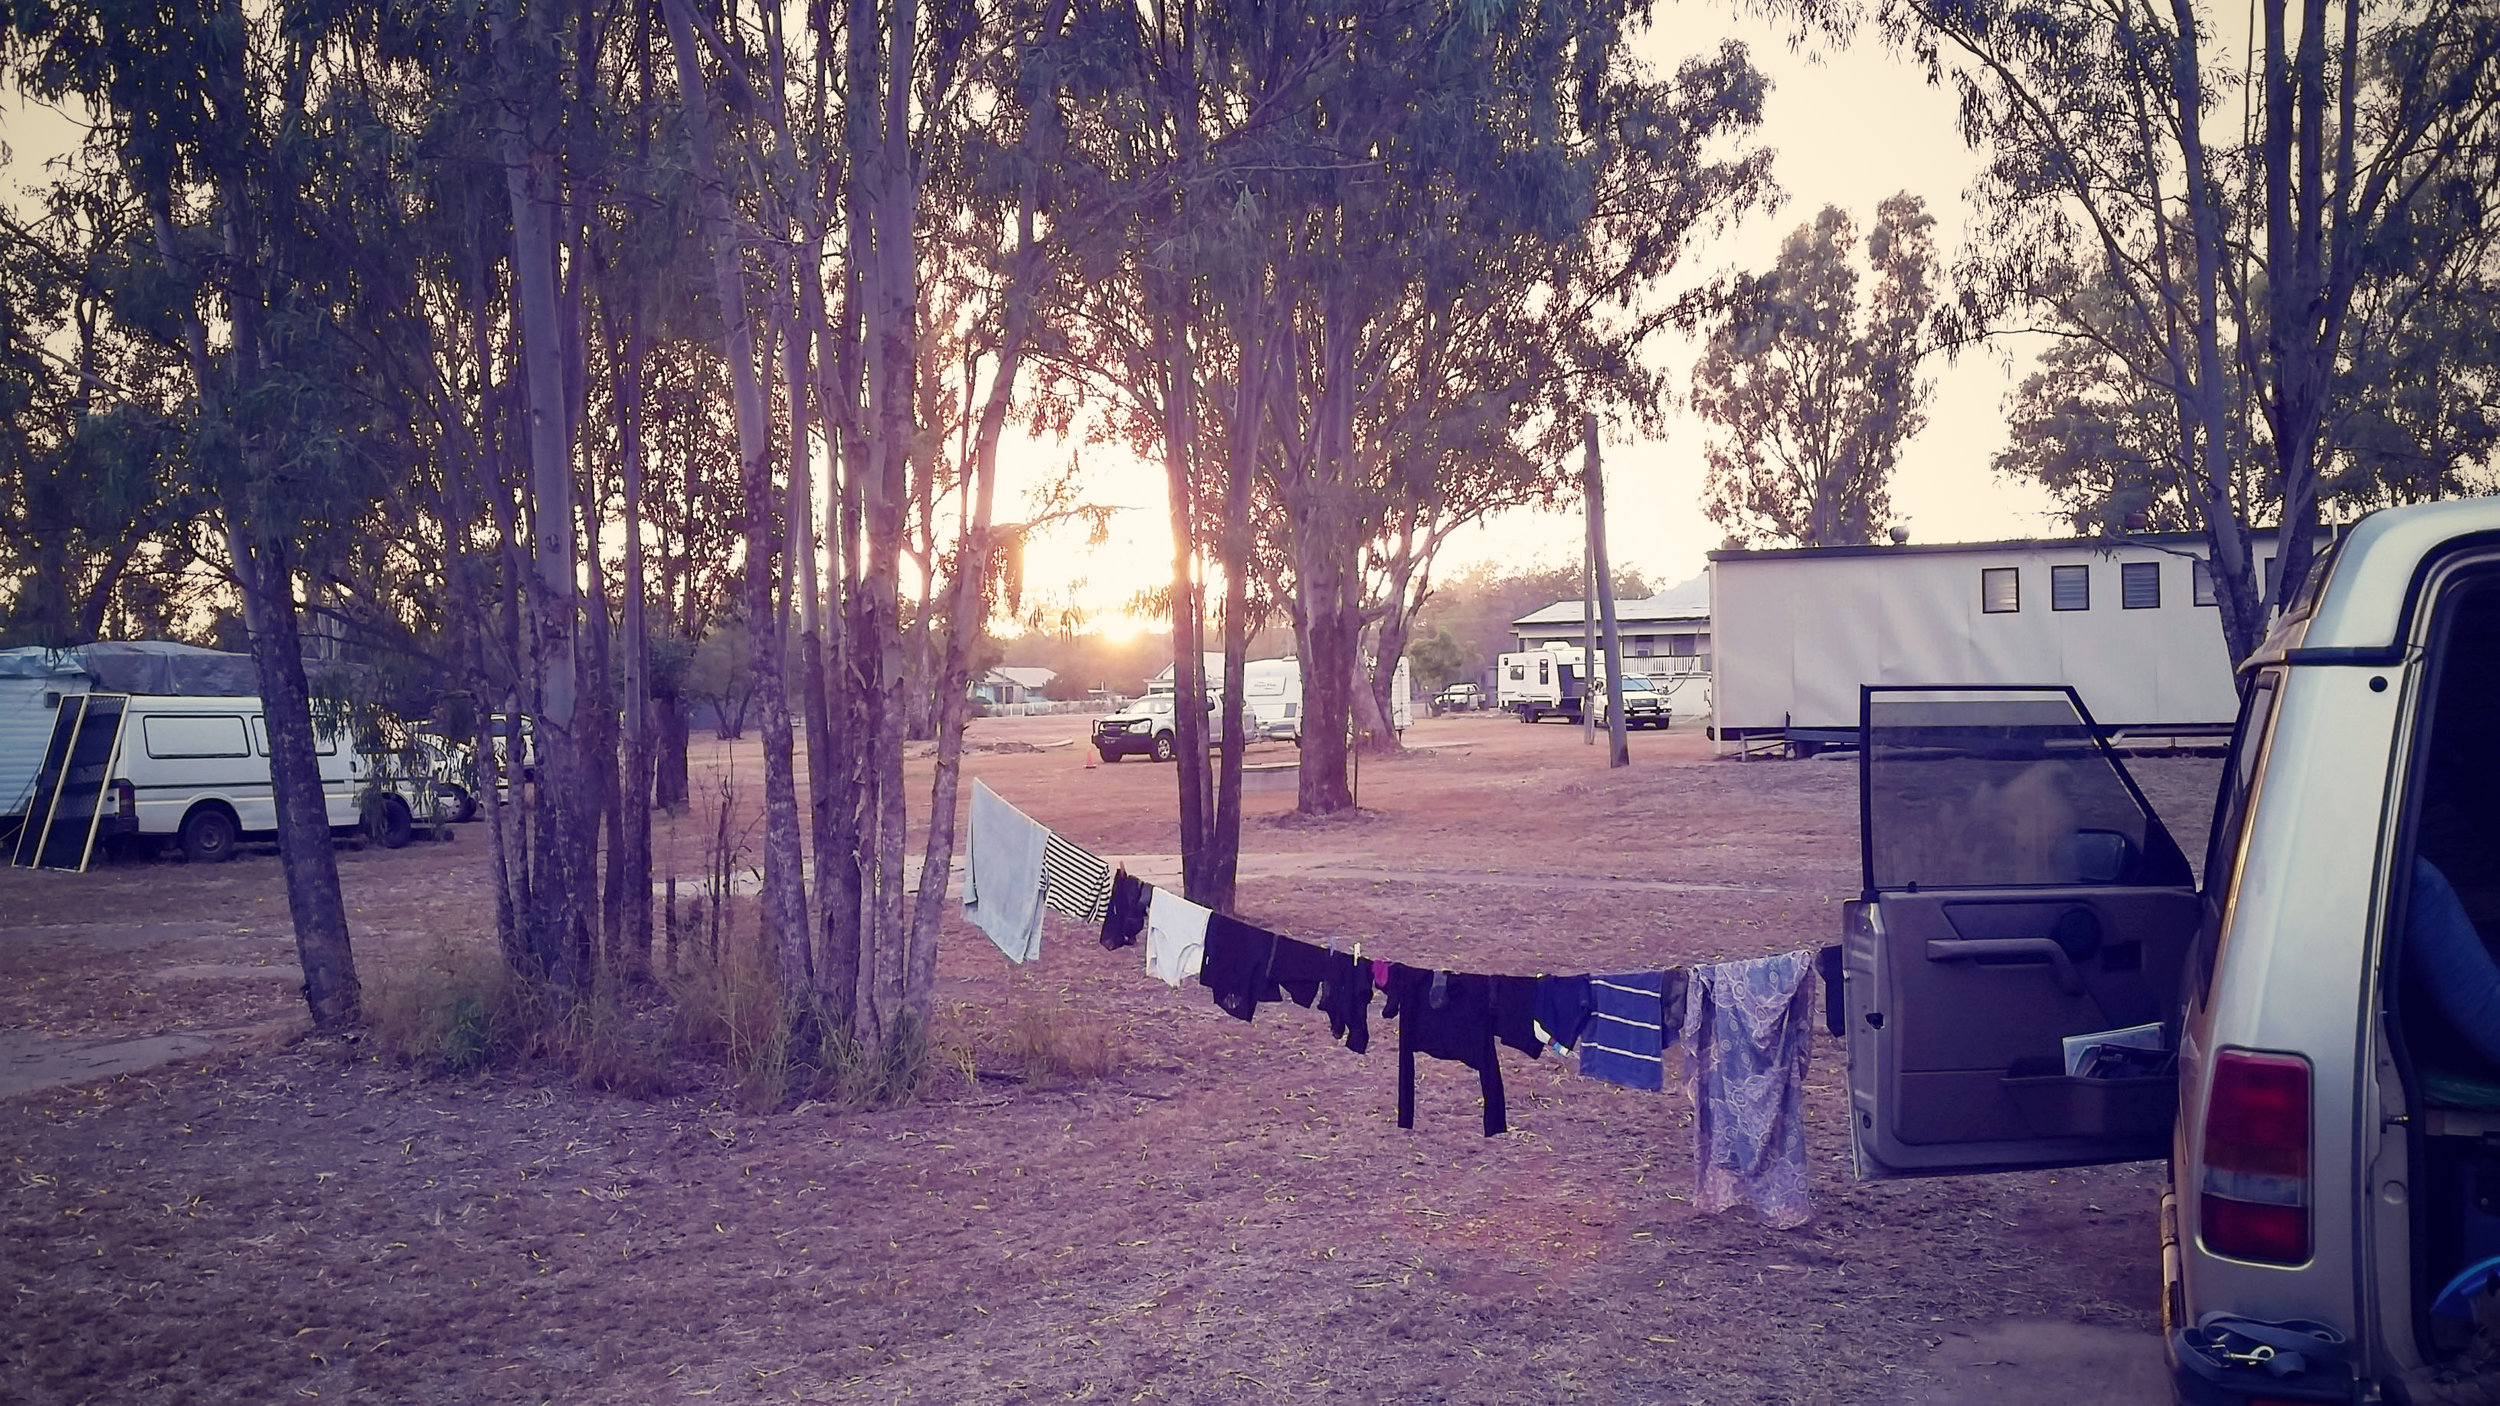 Impromptu laundry line while camping out the back of Duaringa Pub.